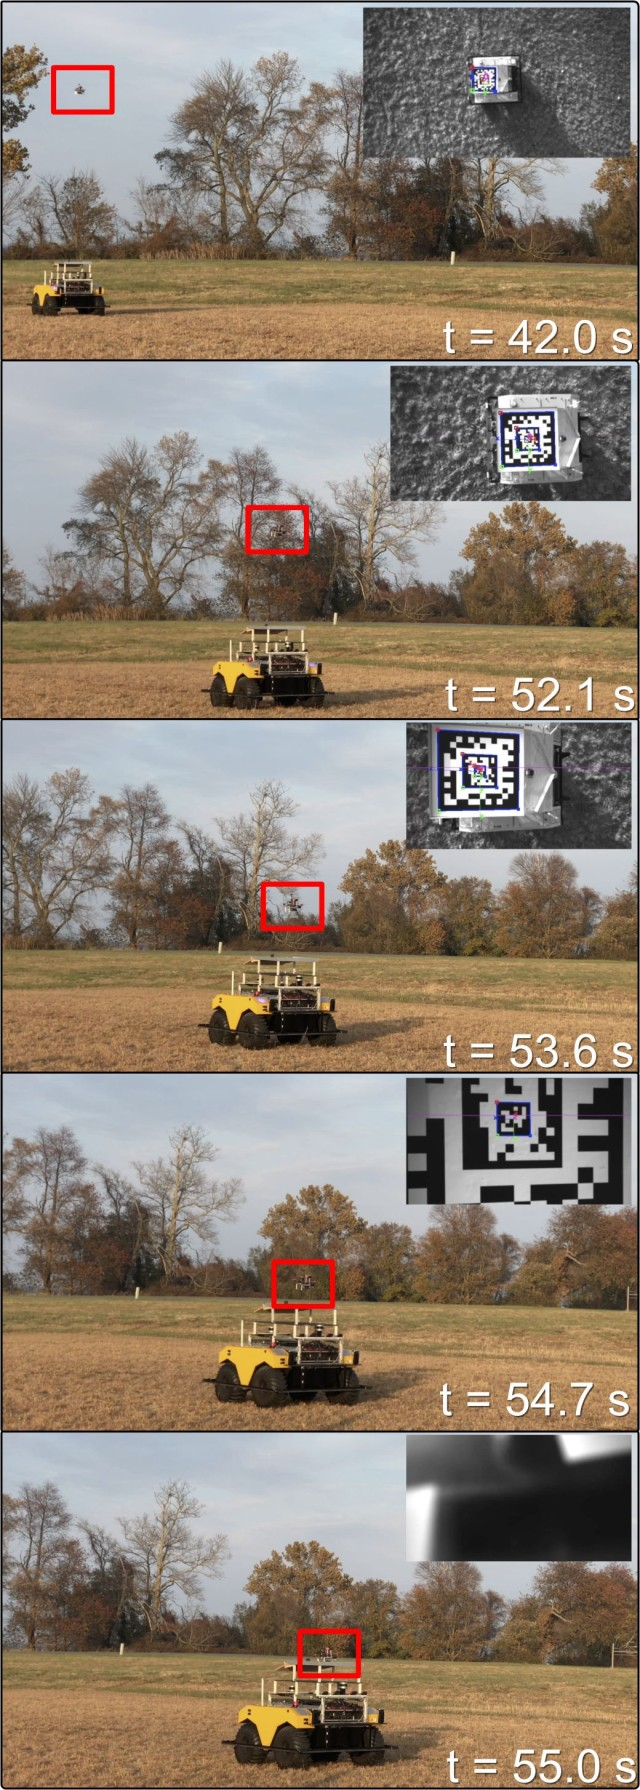 Researchers detail the landing sequence. The UAV is highlighted in the red box. The top right square shows the processed camera frame with the fiducial marker label overlaid.